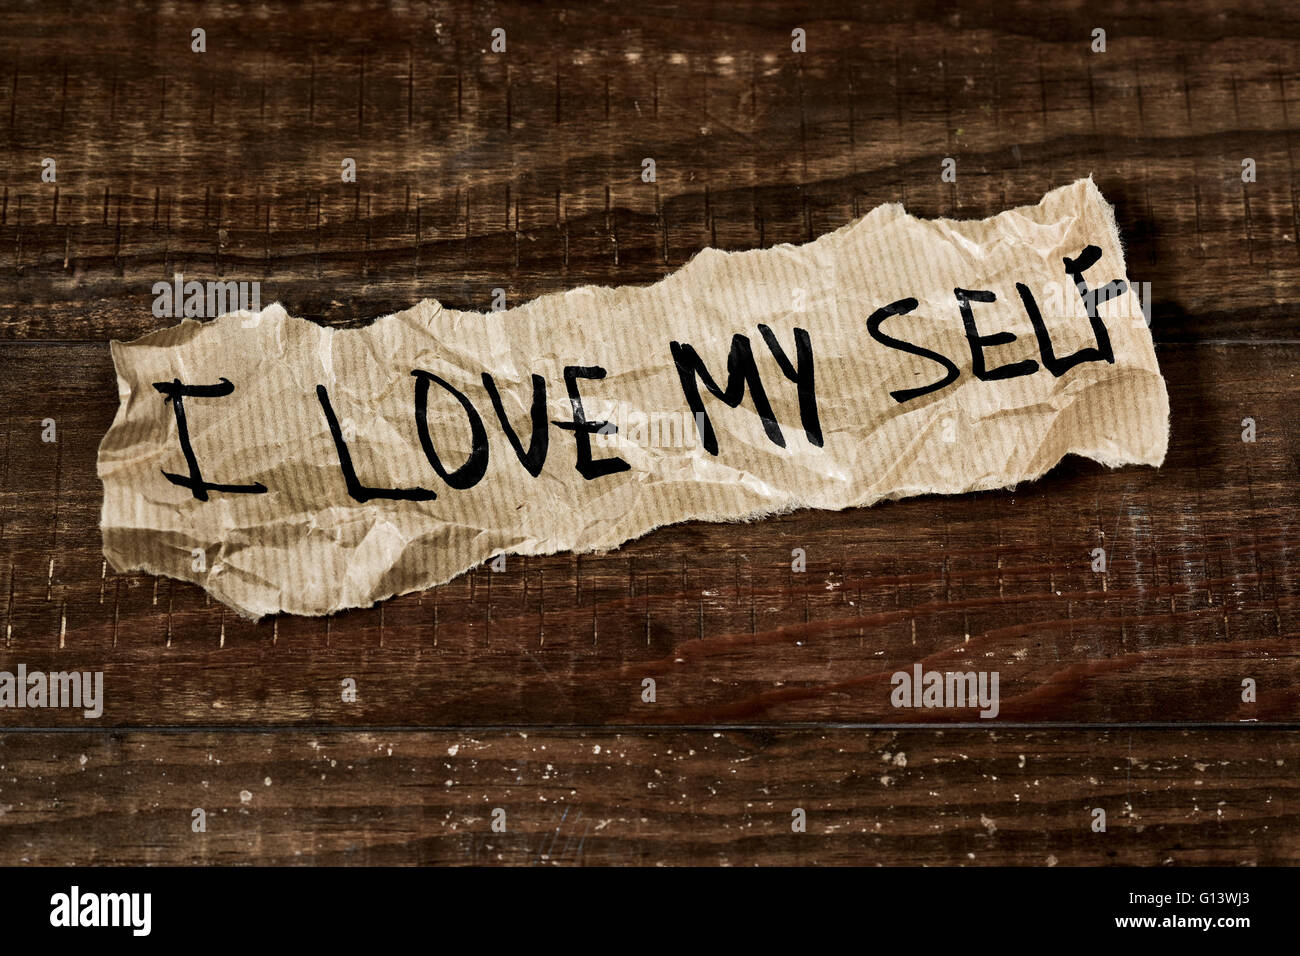 the text I love myself written in a piece of paper, placed on a rustic wooden surface - Stock Image